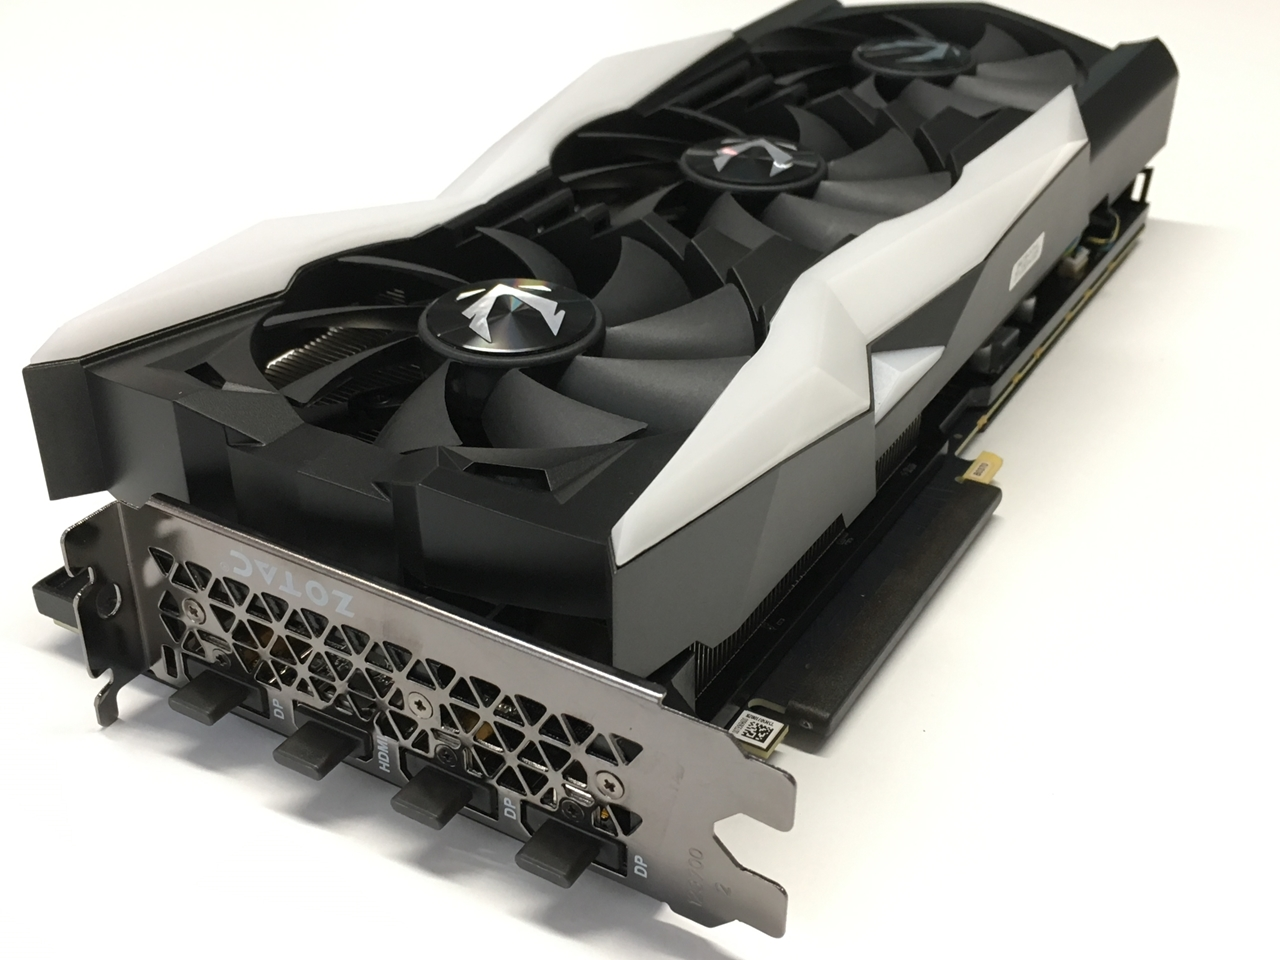 ZOTAC Gaming GeForce RTX 2080 SUPER AMP Extreme Graphics Card Review